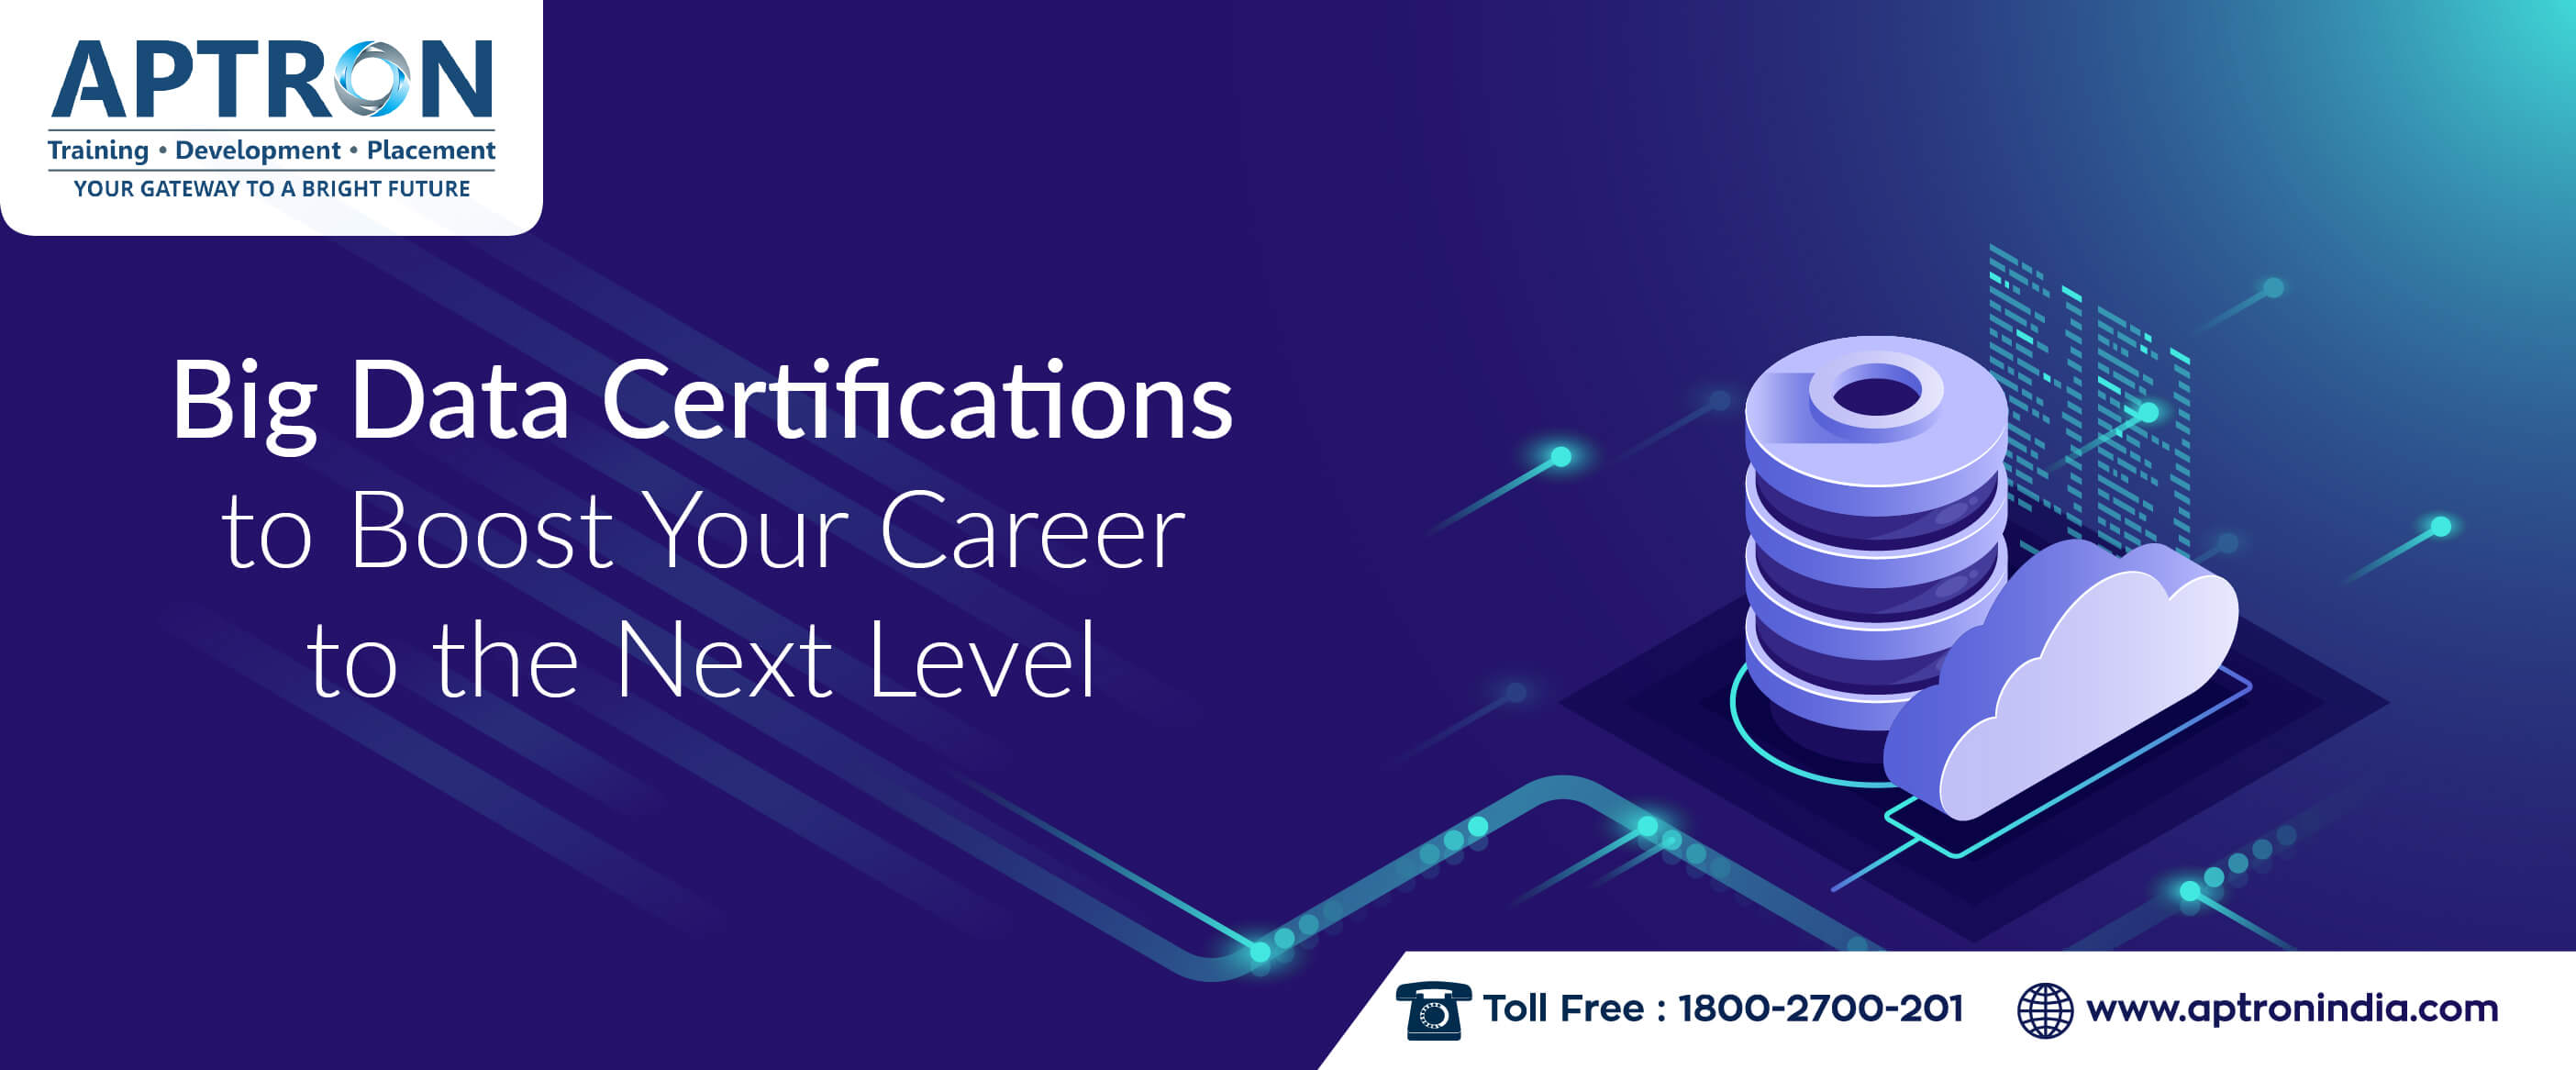 Big Data Certifications to Boost your Career to the Next Level